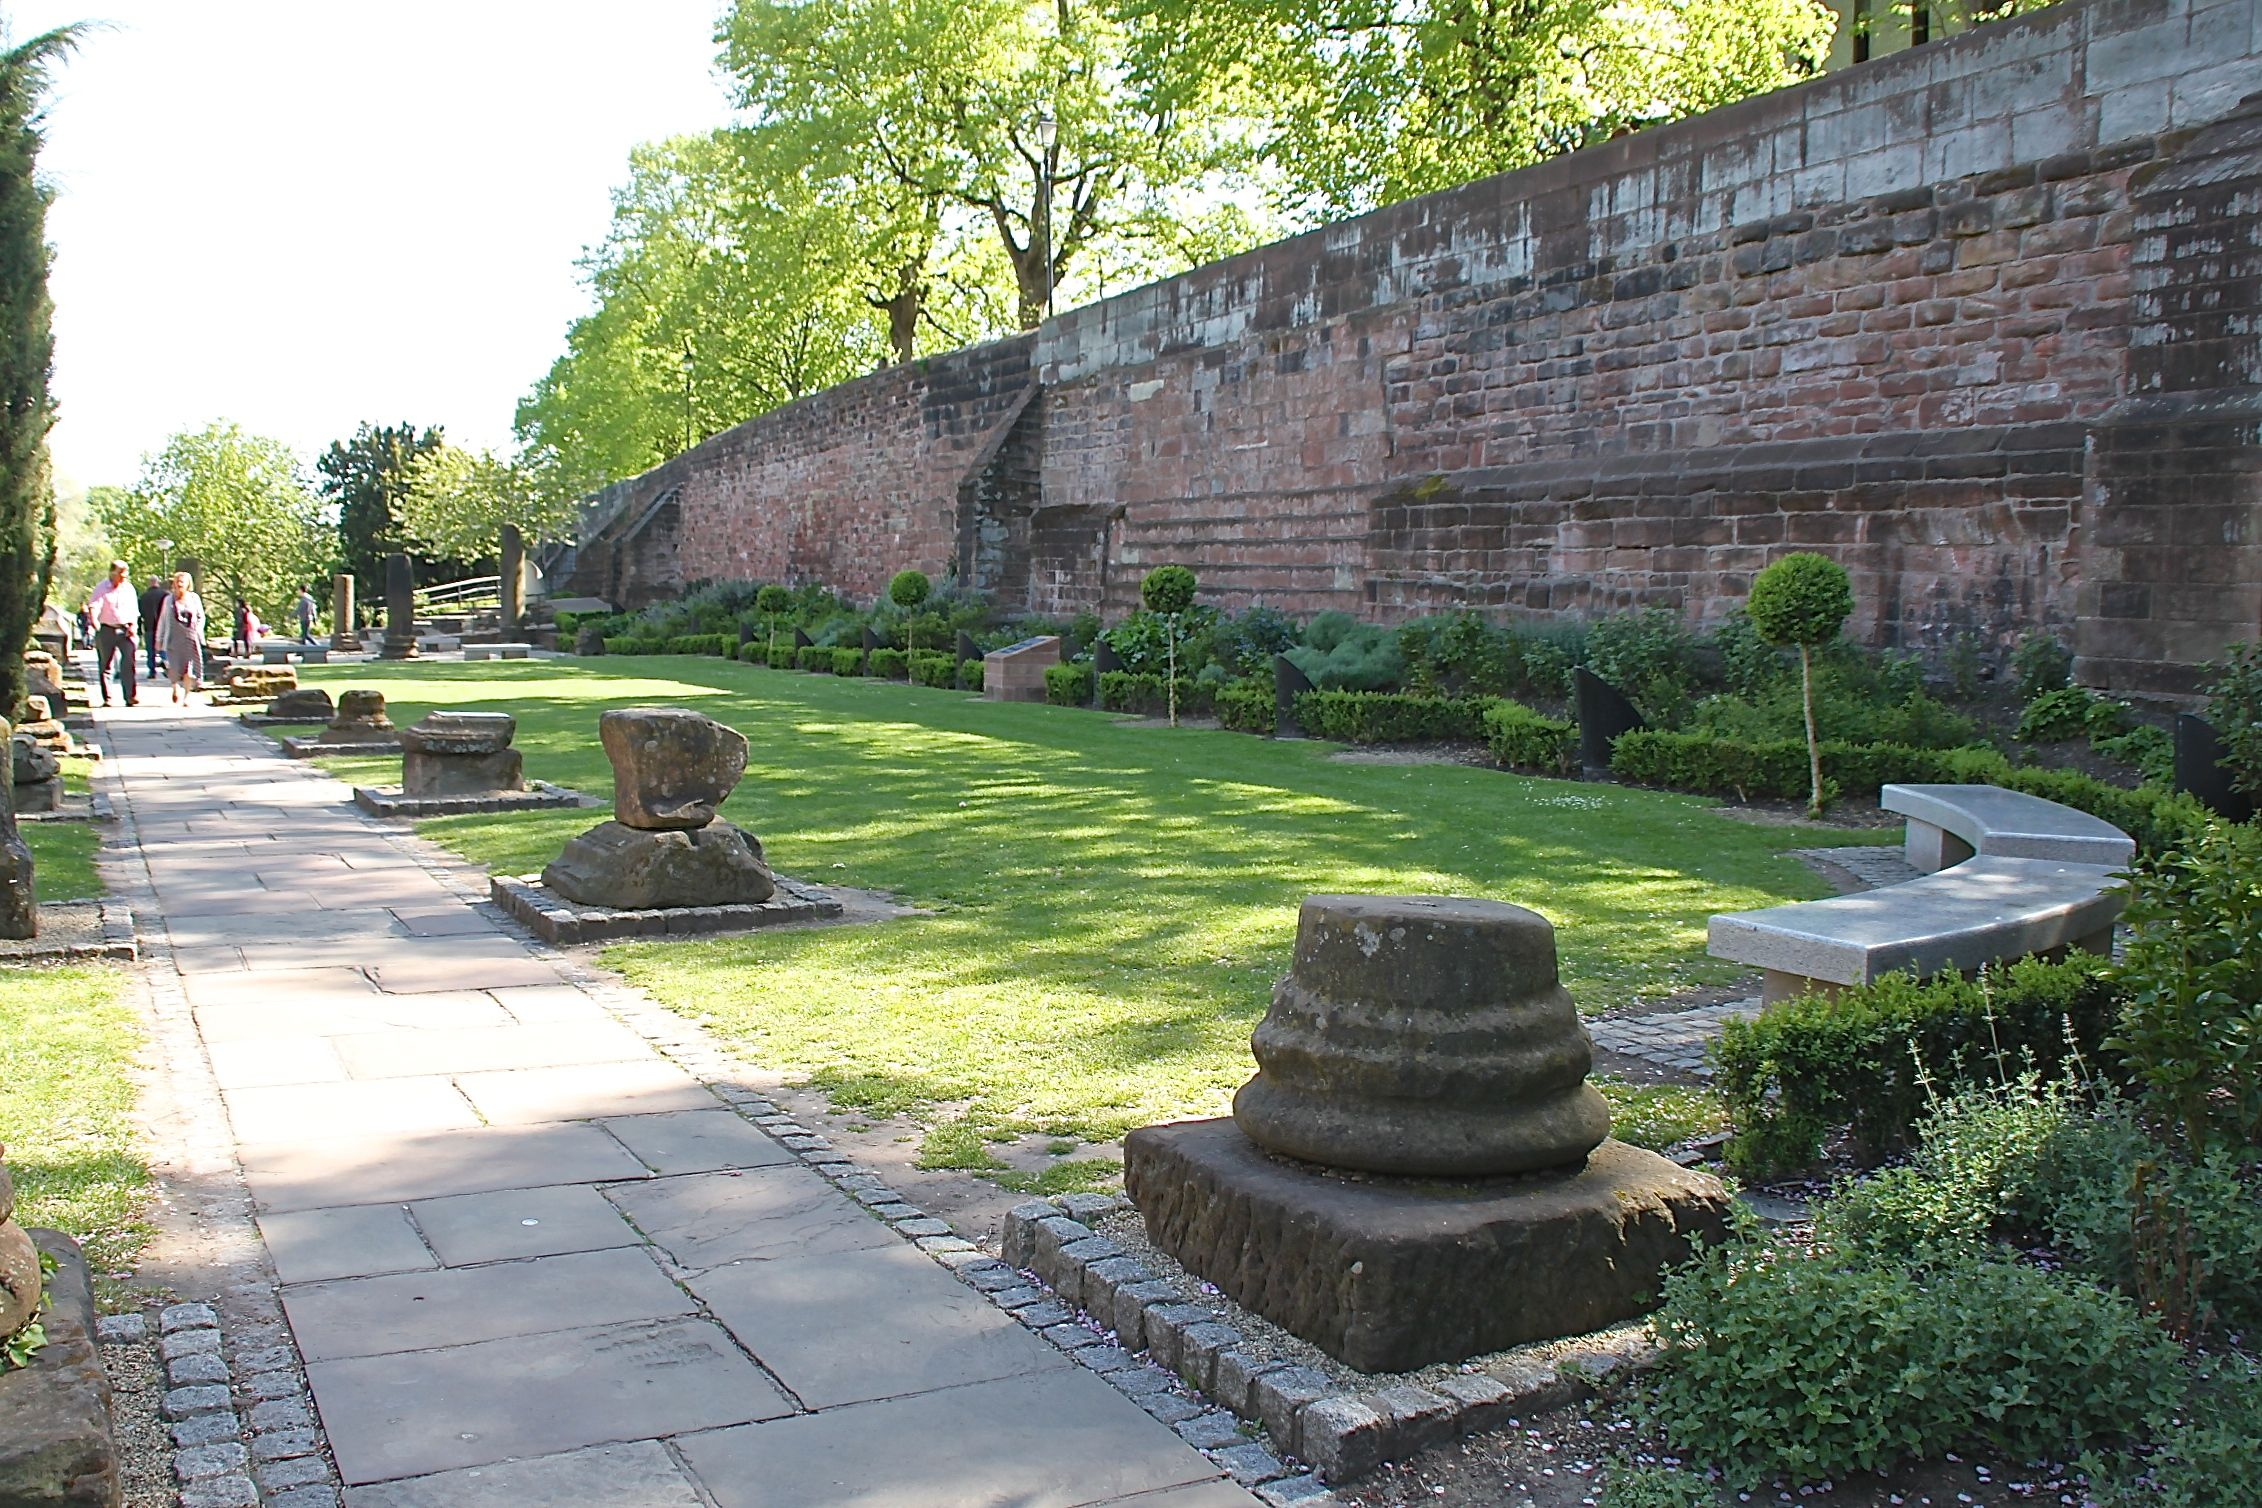 Chester Roman Garden,Top free things to do in the UK